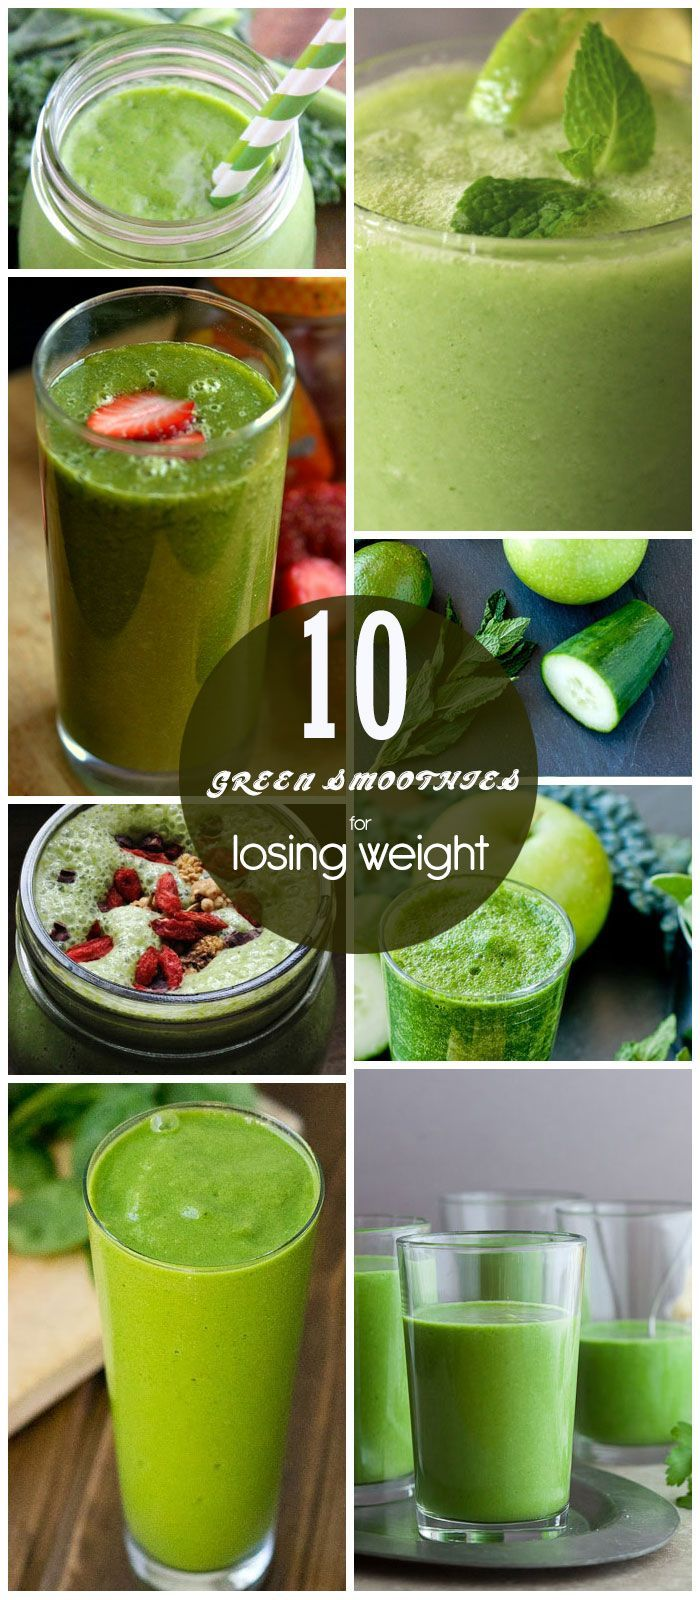 Watch 10 Reasons to Drink a Smoothie Every Day video